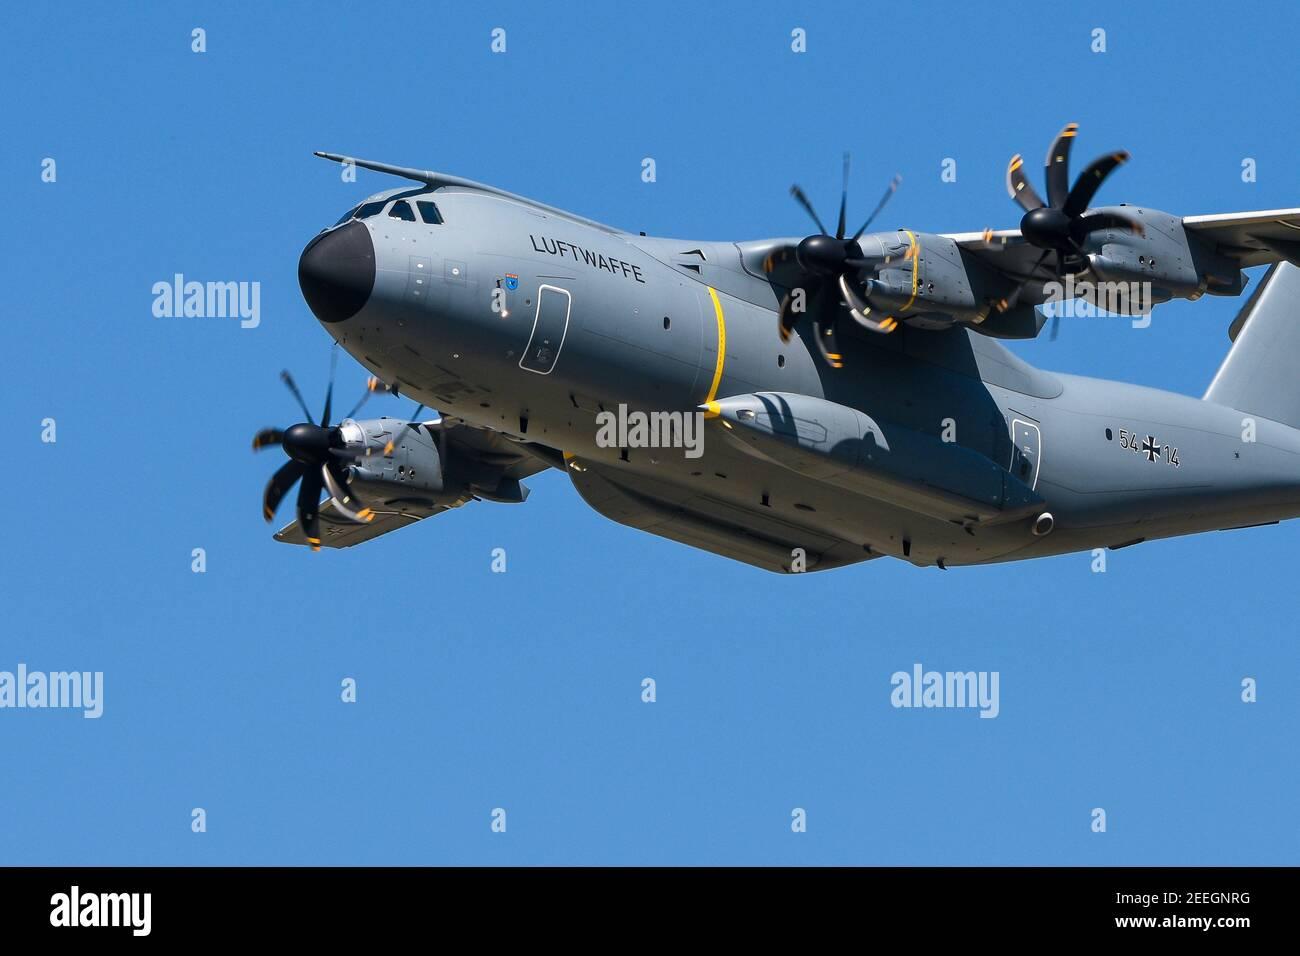 """07.06.2018, Wunstdorf, Lower Saxony, an Airbus A400M """"Atlas"""" in flight, taken on spotterday on Air Transport Wing 62. The Airbus A400M has been replacing transport aircraft from seven NATO countries since 2013. In the German Air Force, the A400M is to replace the old Transall C-160 from the 1960s. With a higher payload, range and speed, the A400M should have the same capabilities and also be able to be used as a tanker aircraft. The first A400M was delivered to Germany at the end of 2014, the last of 53 pieces is to take place in 2026. 